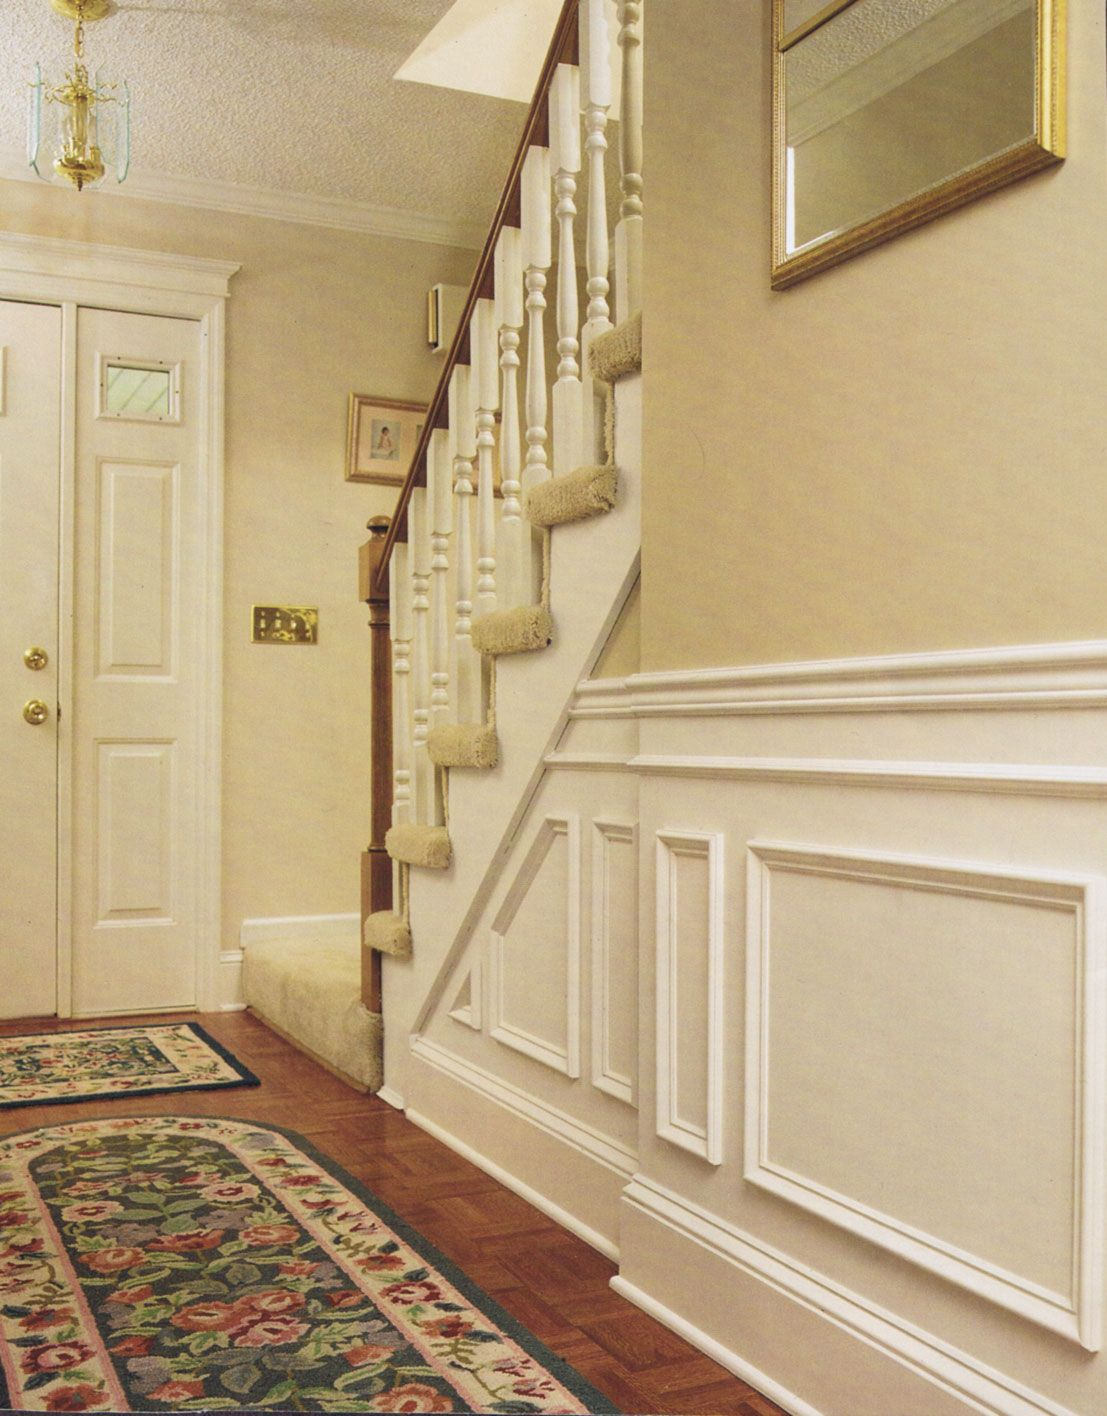 Superb Purchase Your Interior Through Wainscoting Ideas: Wainscoting Interior U2013